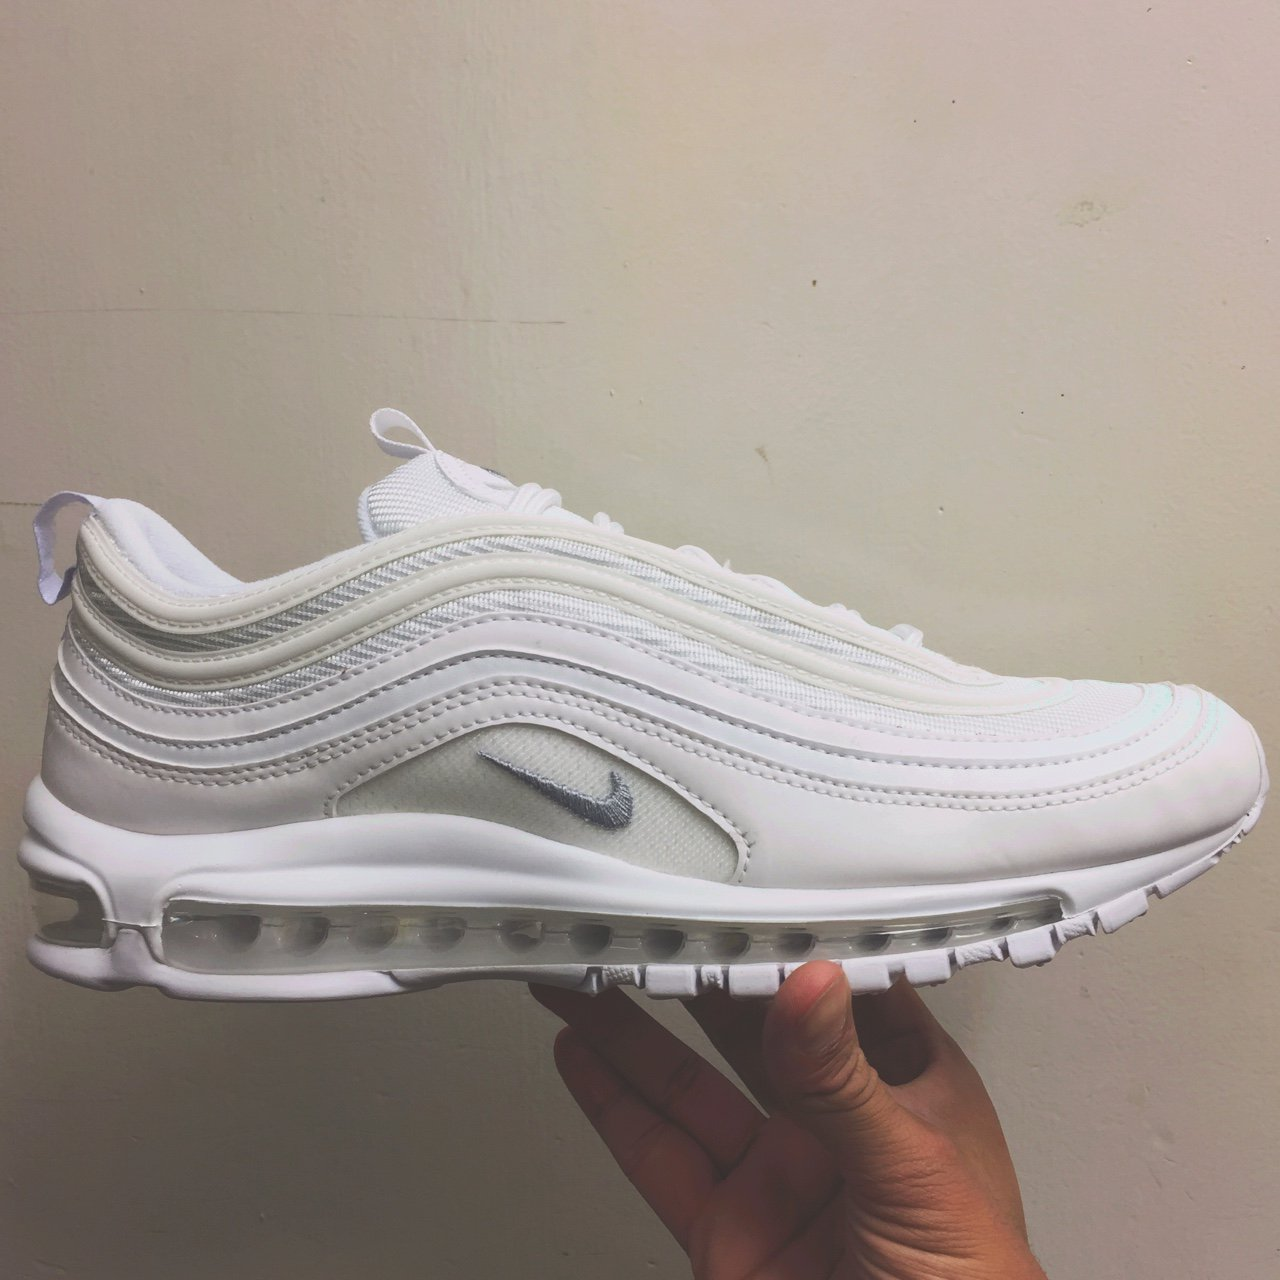 3a99c9620c1 ... cheap nike air max 97 triple white 3m reflective brand new in the depop  dea65 76776